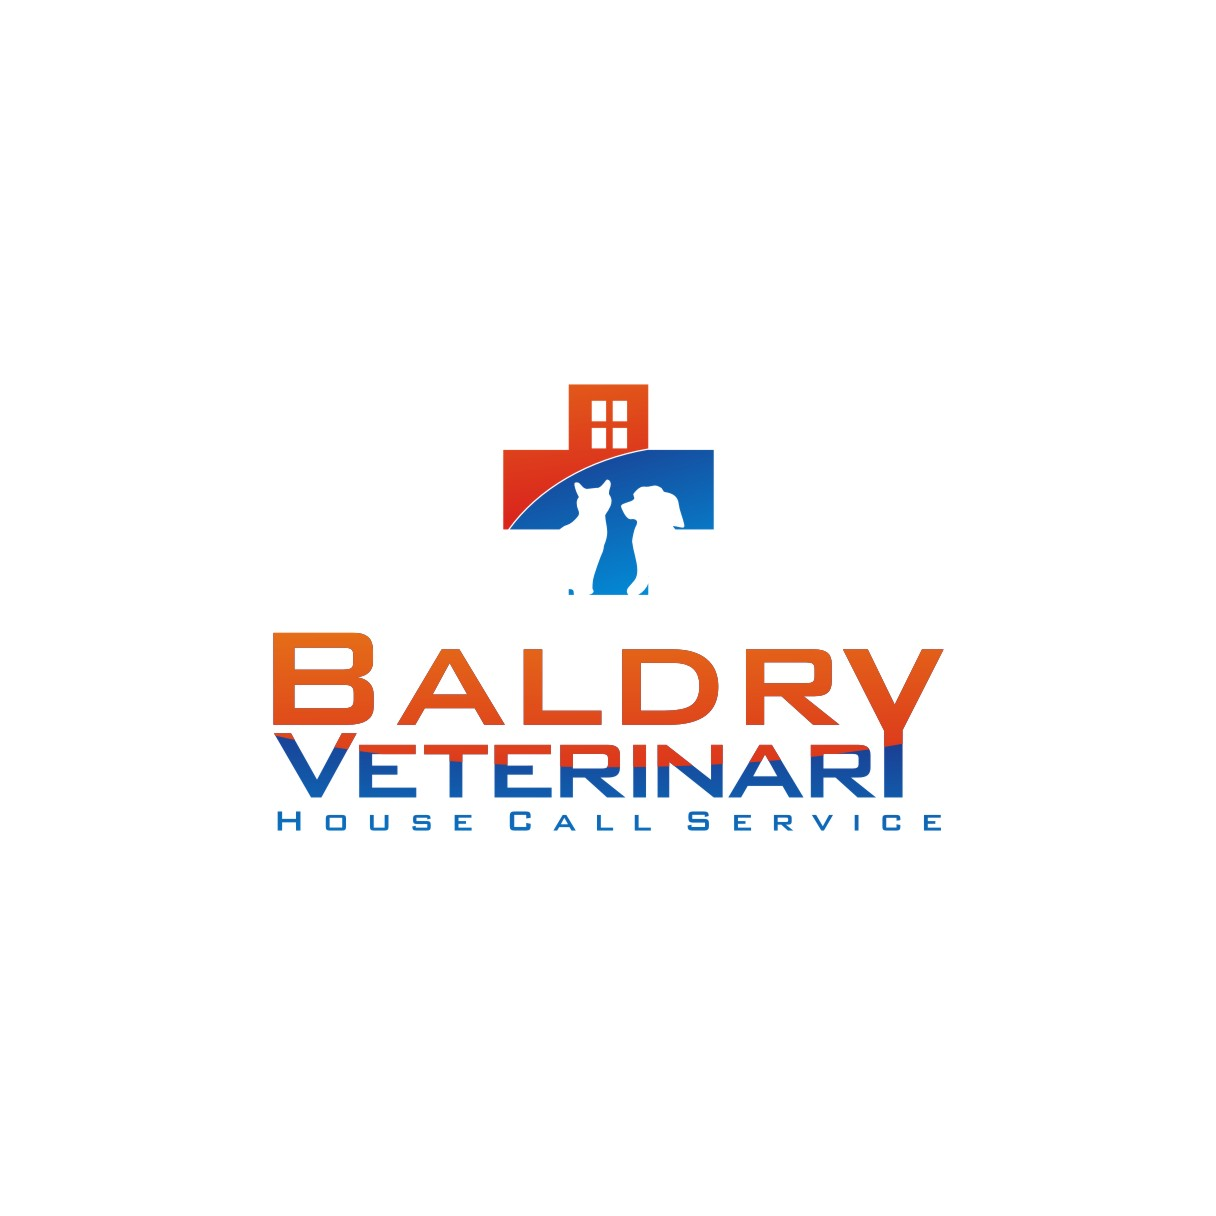 Logo Design by jalal - Entry No. 80 in the Logo Design Contest Captivating Logo Design for Baldry Veterinary House Call Service.